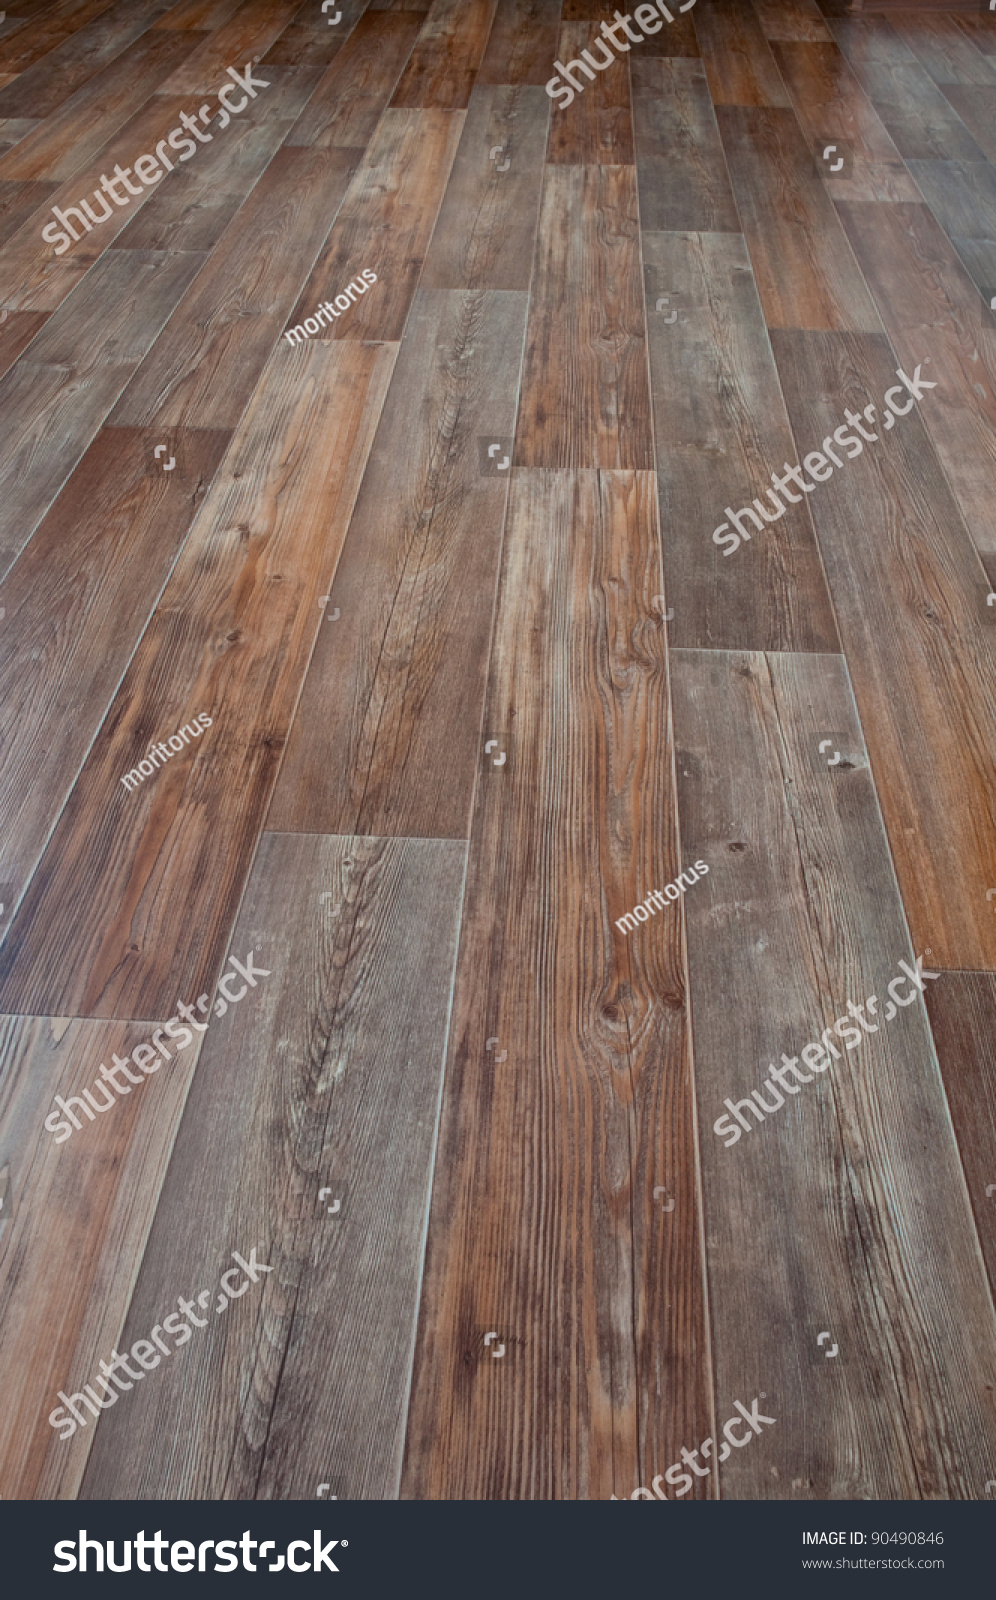 linoleum floor covering imitation wood stock photo 90490846 shutterstock. Black Bedroom Furniture Sets. Home Design Ideas